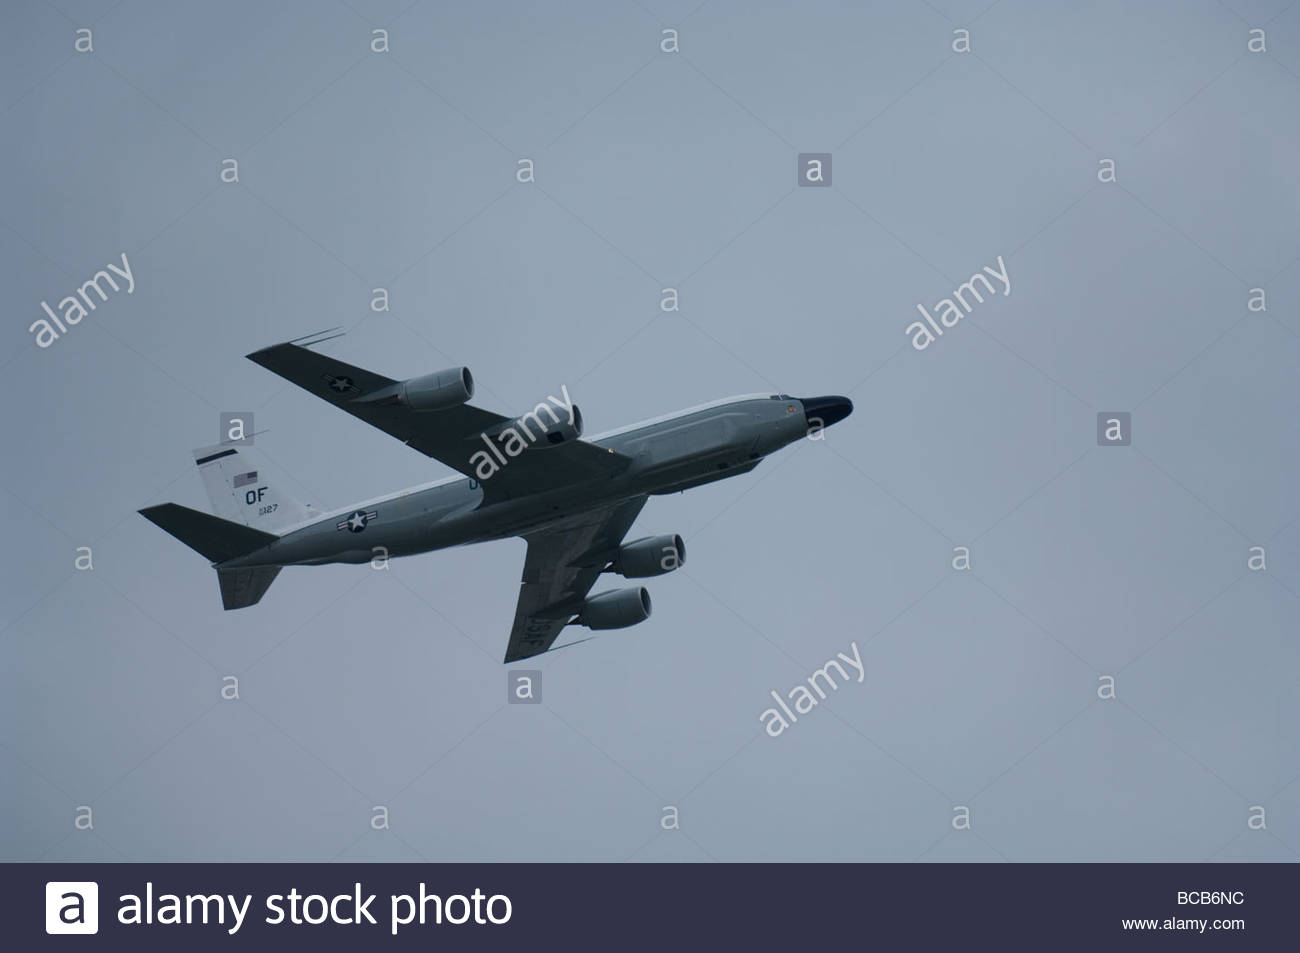 An RC-135 reconnaissance jet performs at an airshow in Nebraska. - Stock Image